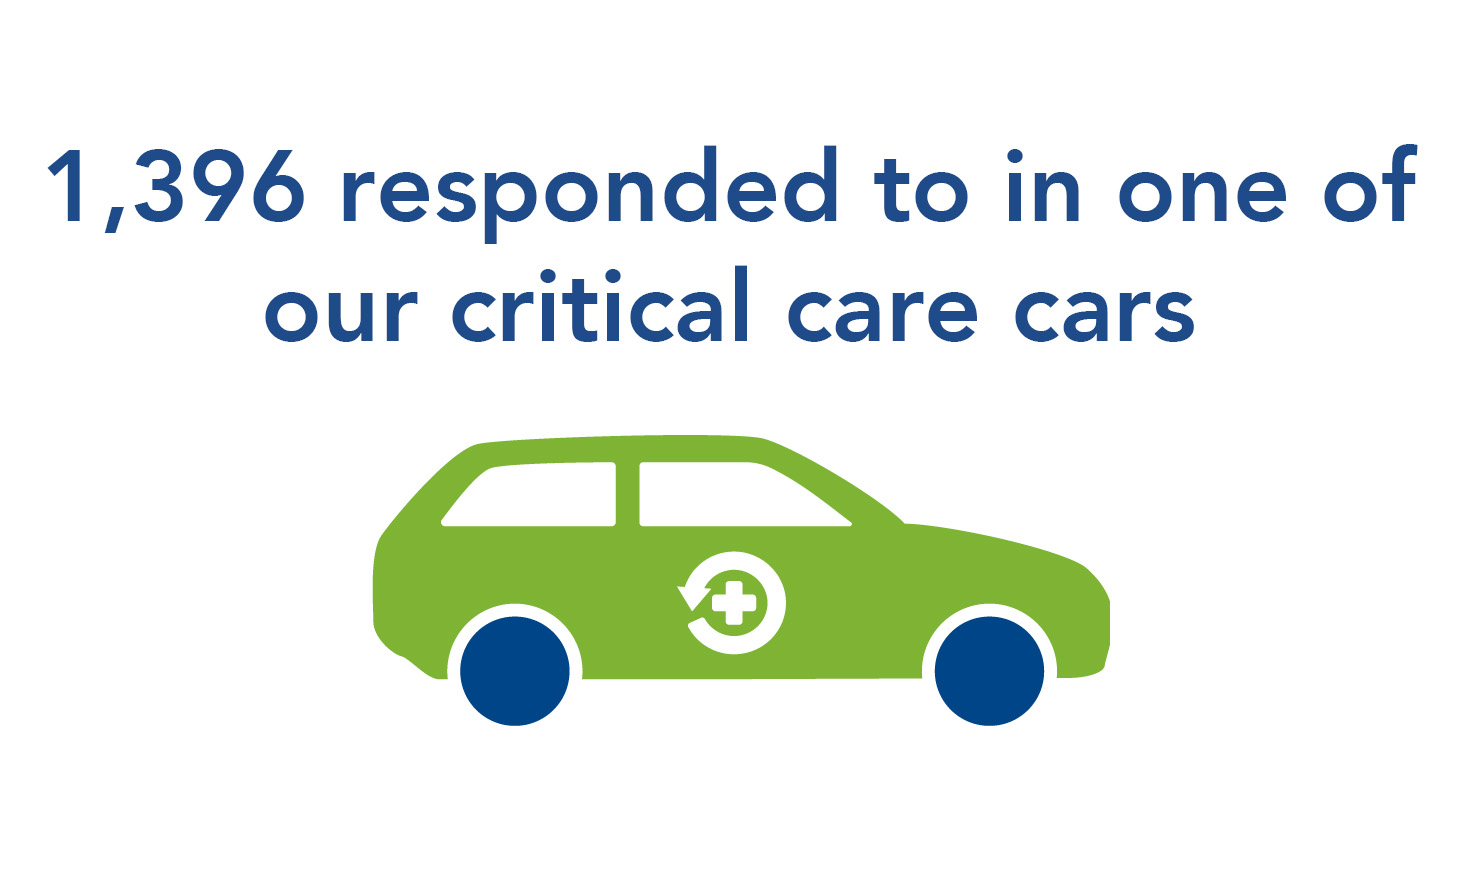 2019 - critical care car